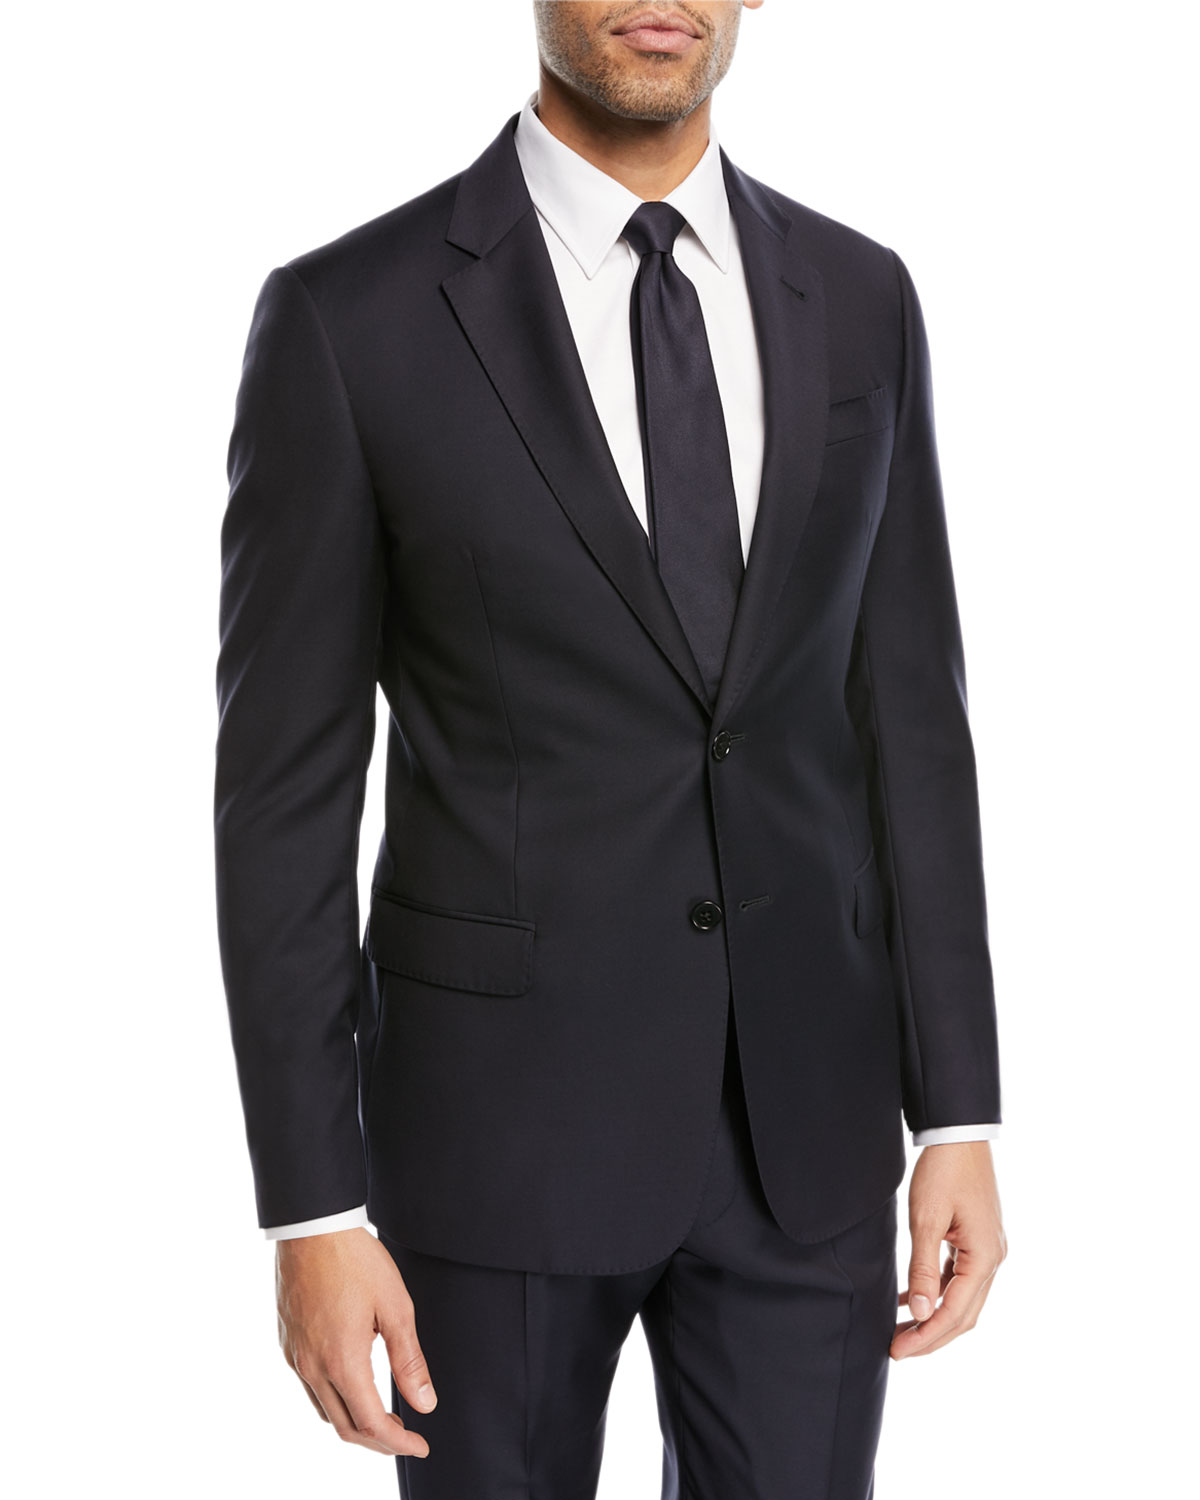 Super 130s Wool Two Piece Suit by Emporio Armani